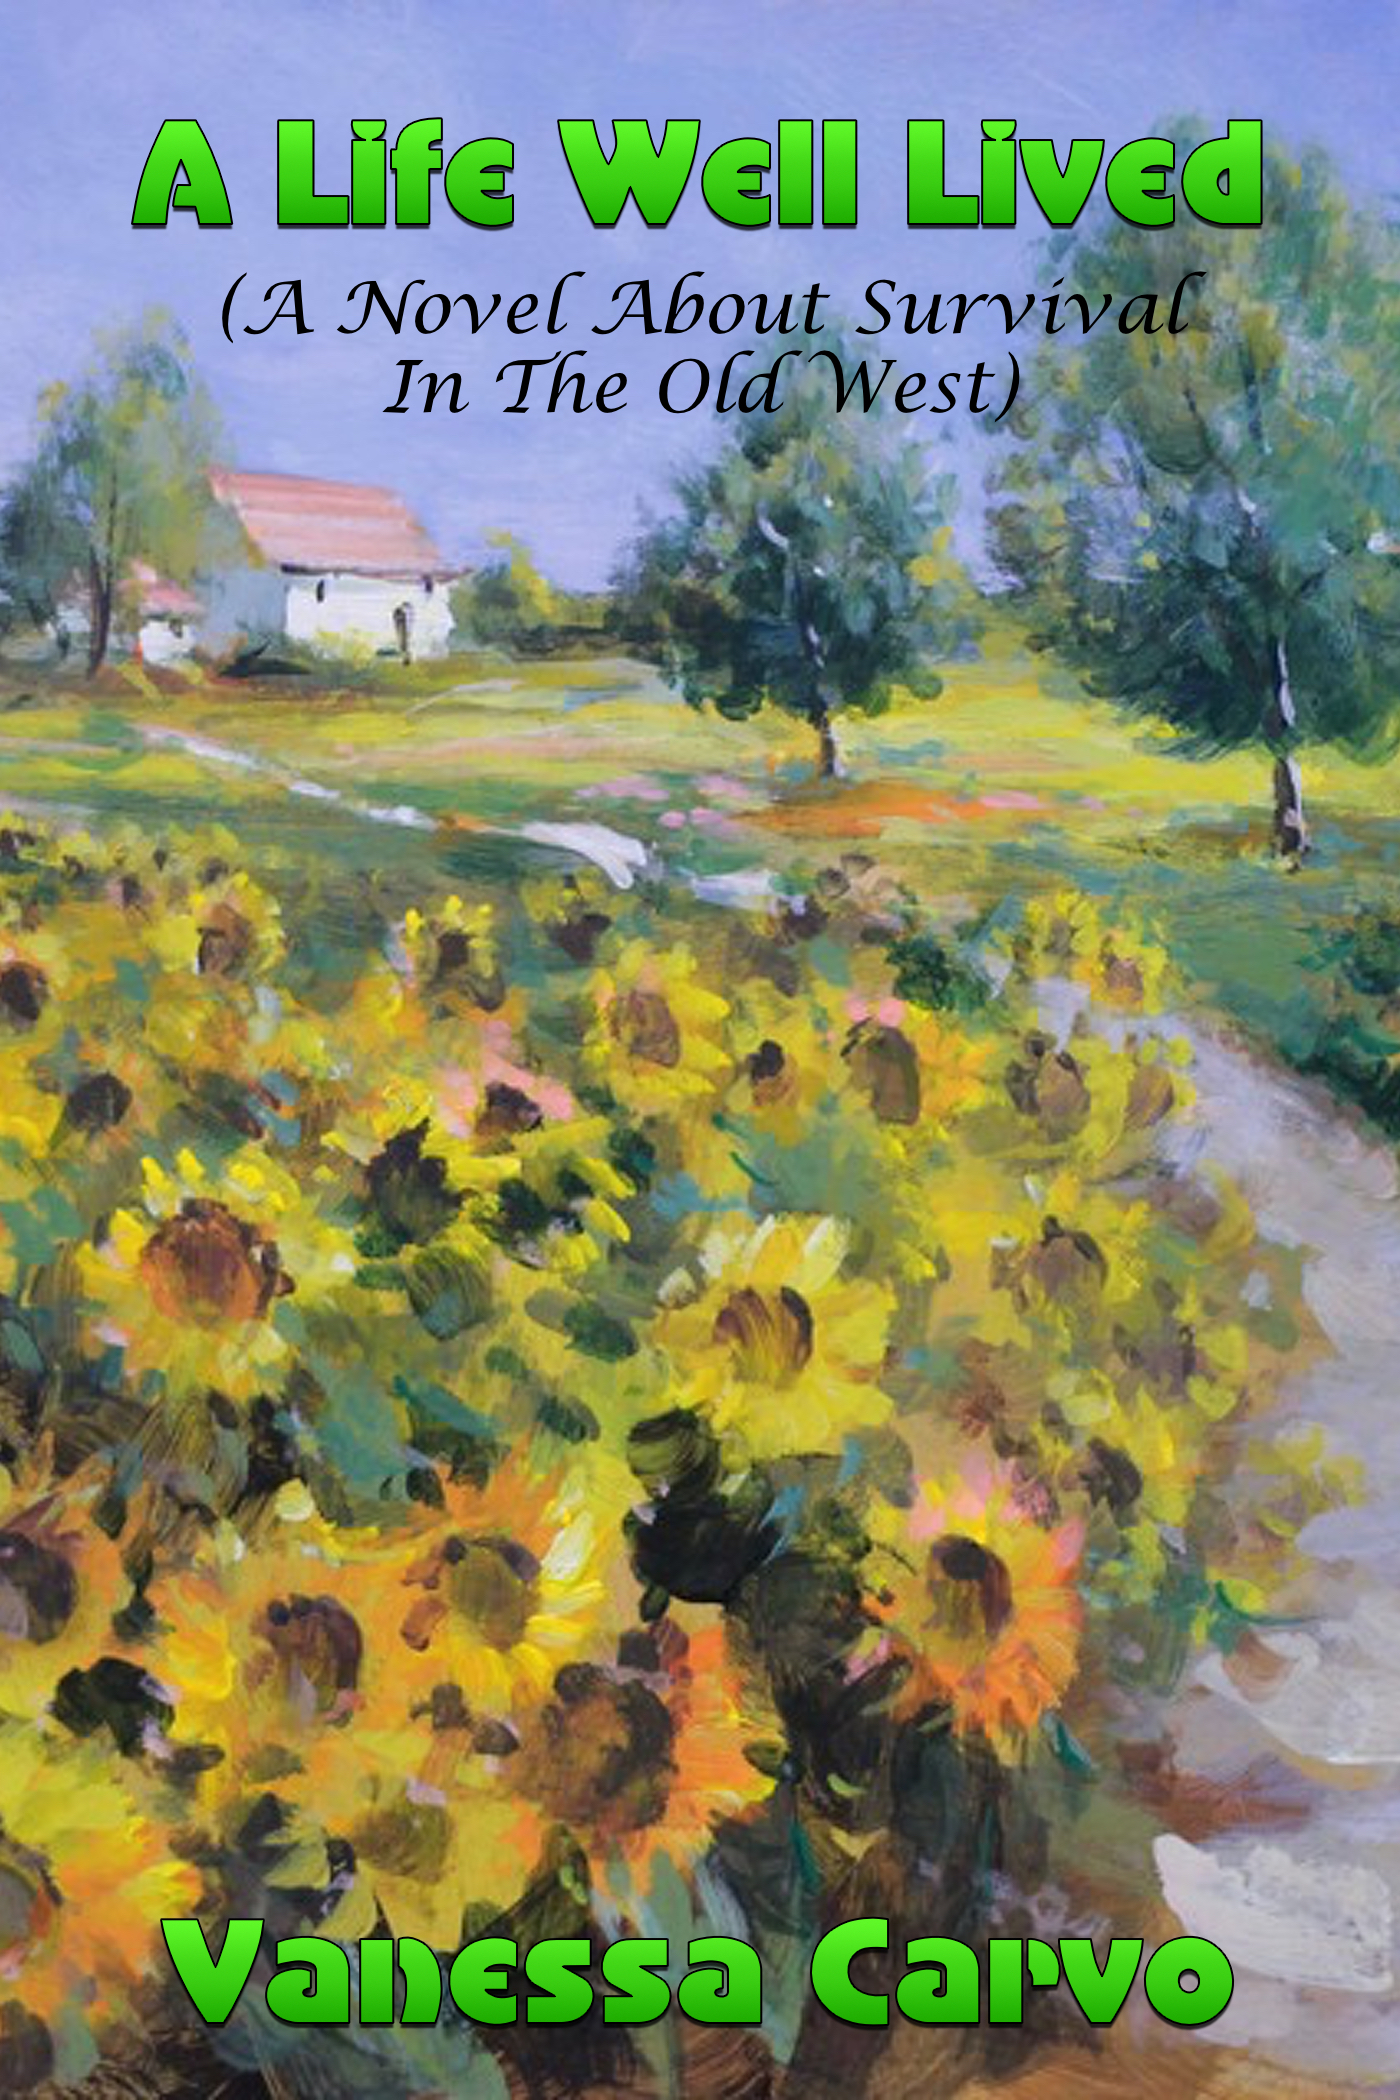 A Life Well Lived (A Novel About Survival In The Old West)  by  Vanessa Carvo